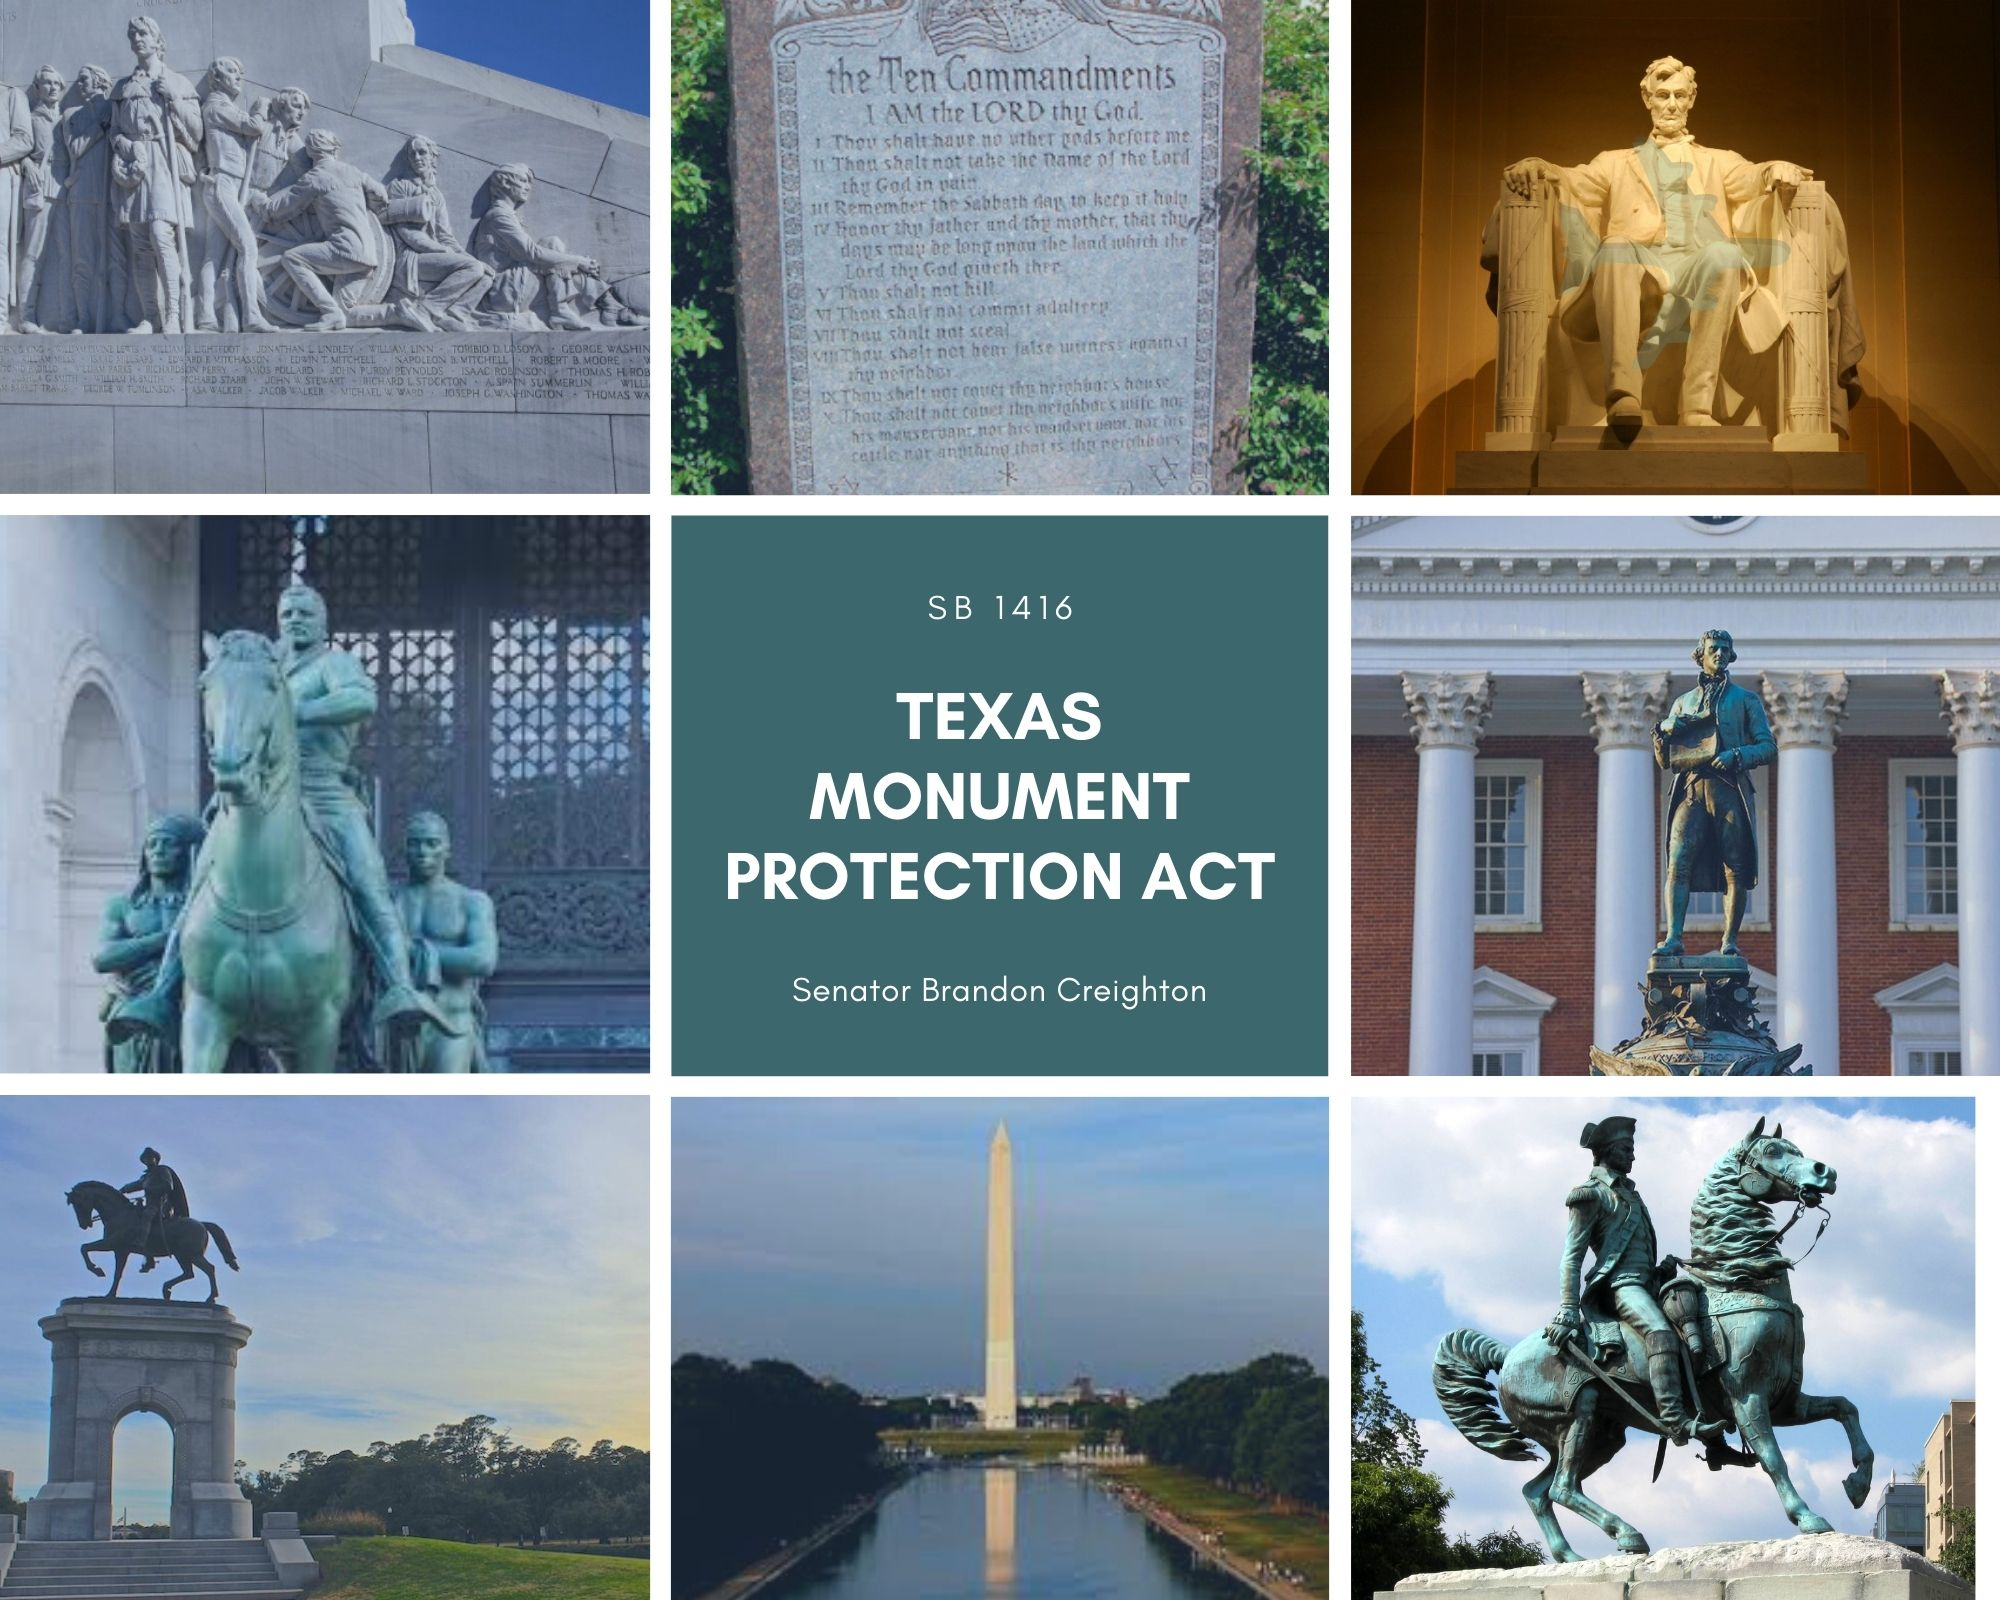 The Texas Monument Protection Act – Senate Bill 1416